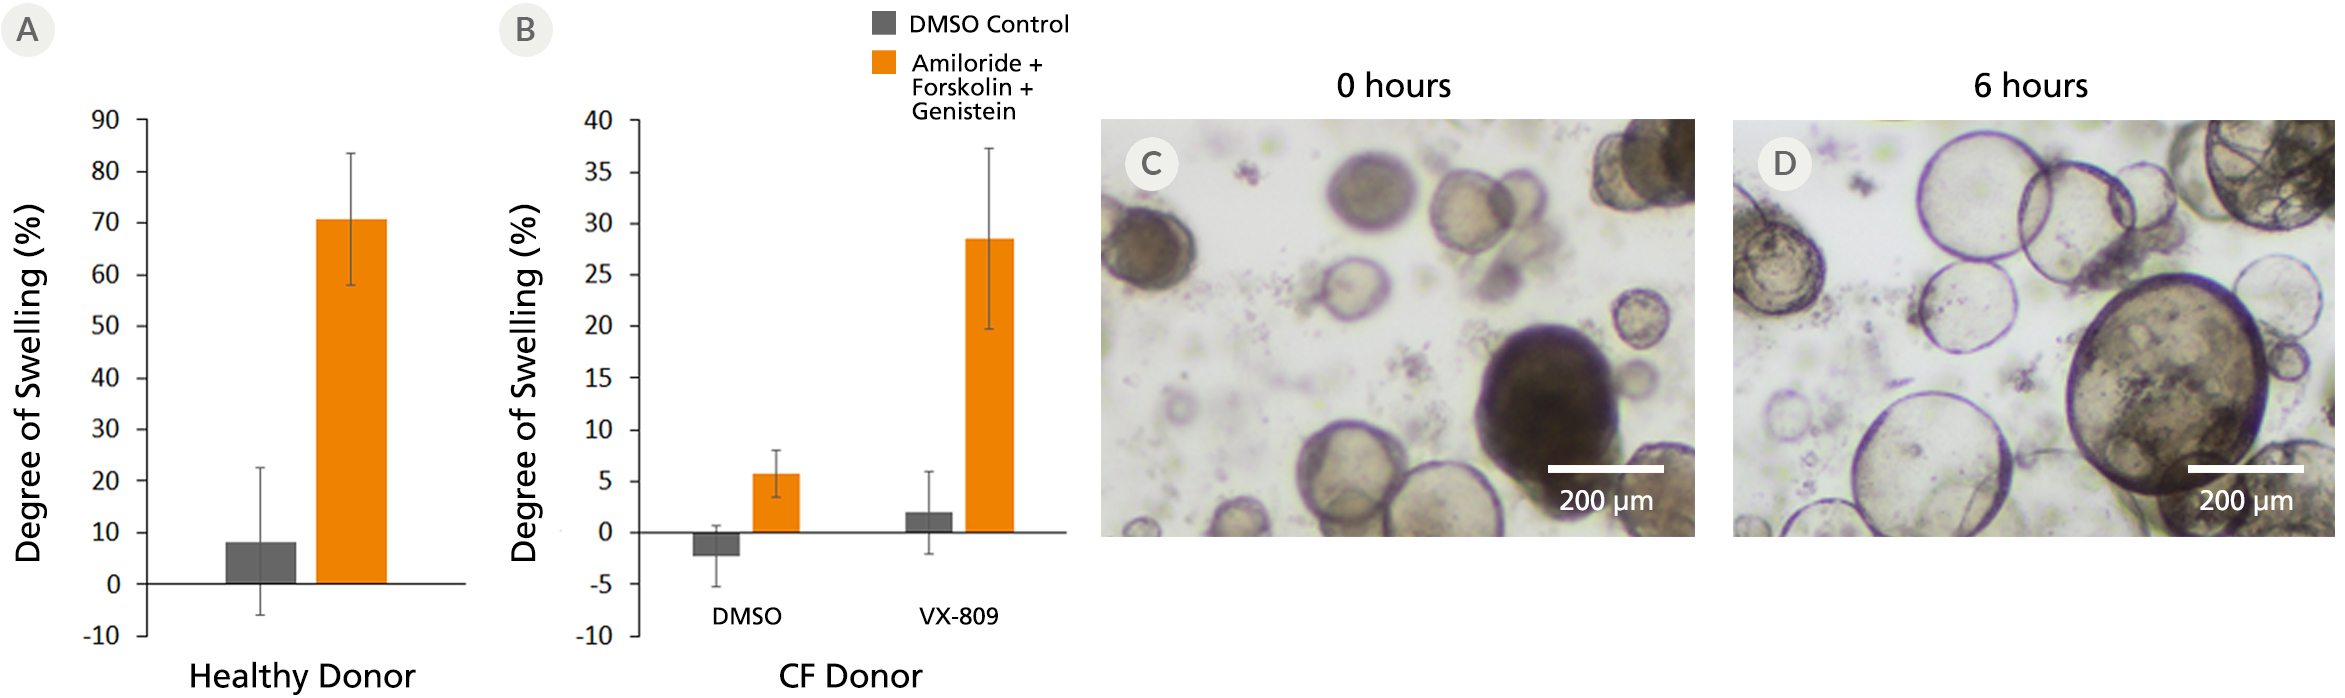 Comparison of Forskolin-treated airway organoids derived from healthy donors and CF donors.